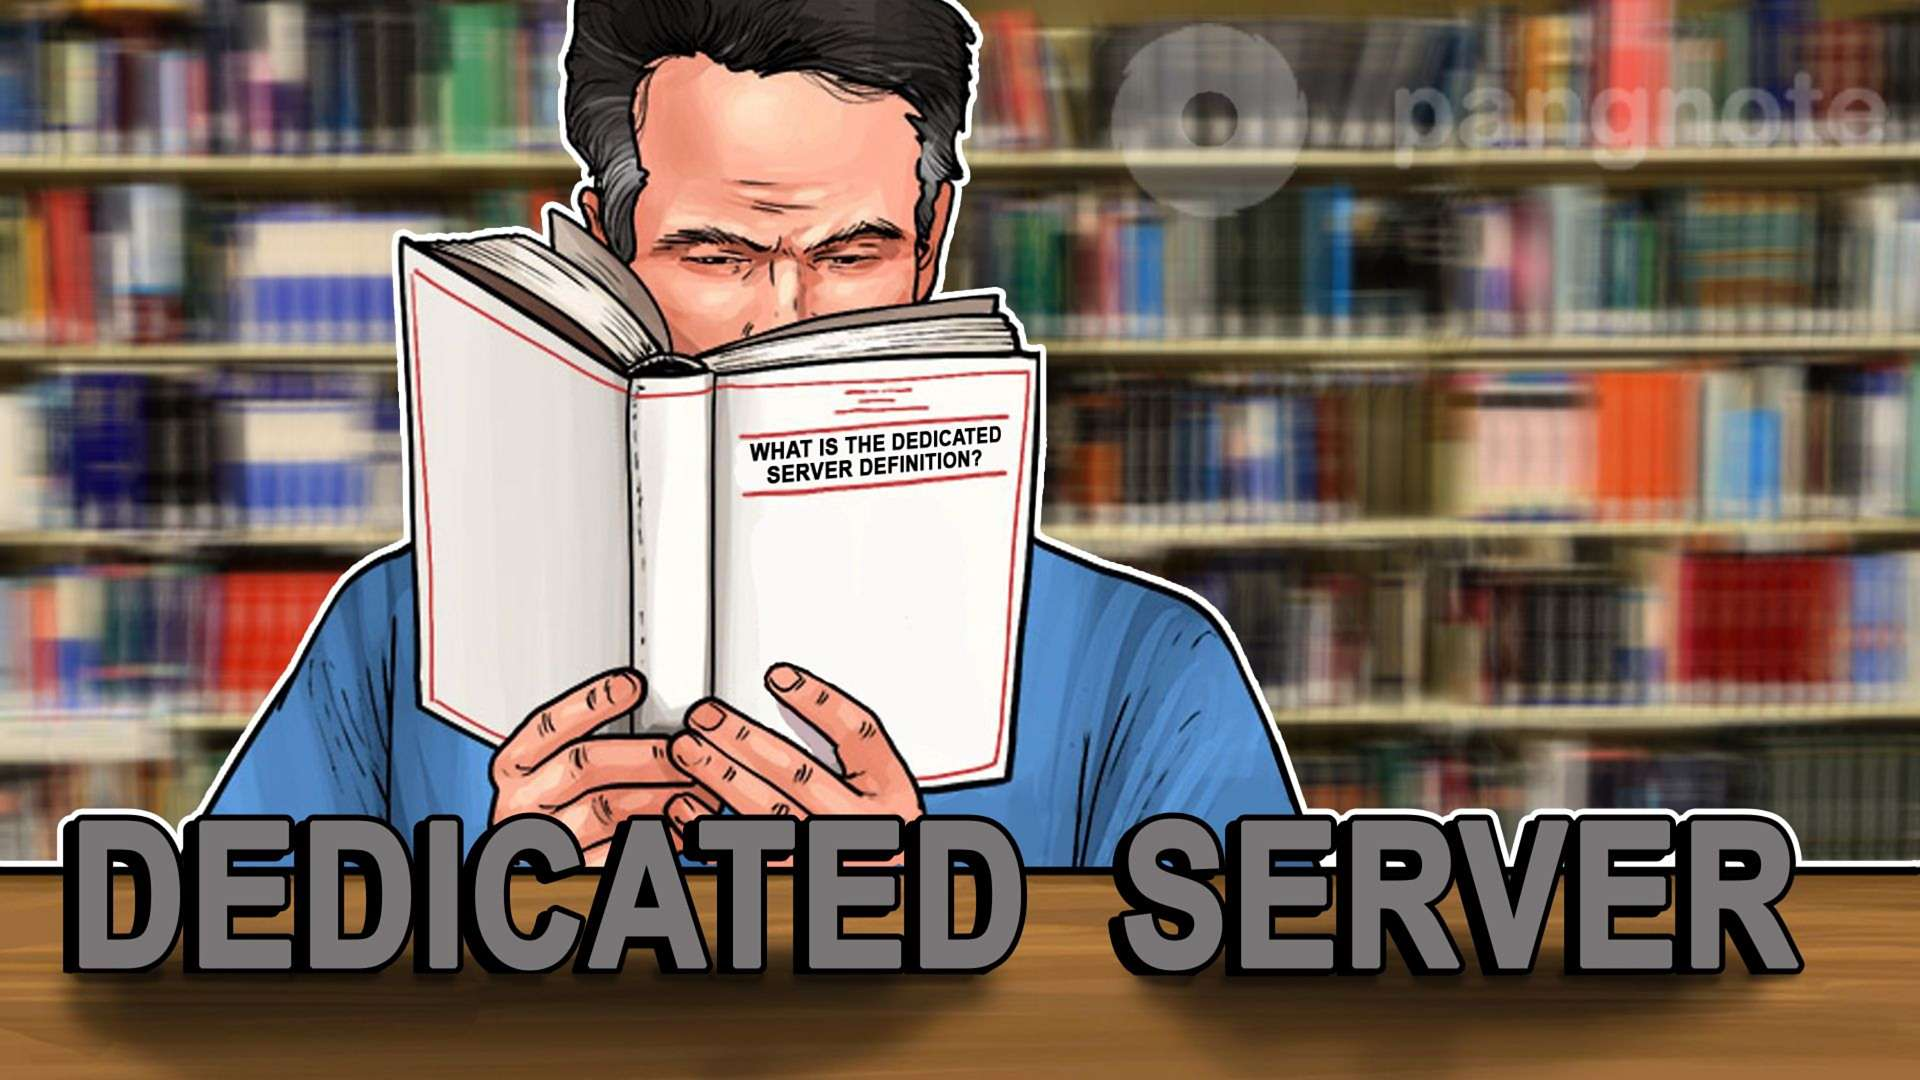 What are the special issues and what is the dedicated server definition?